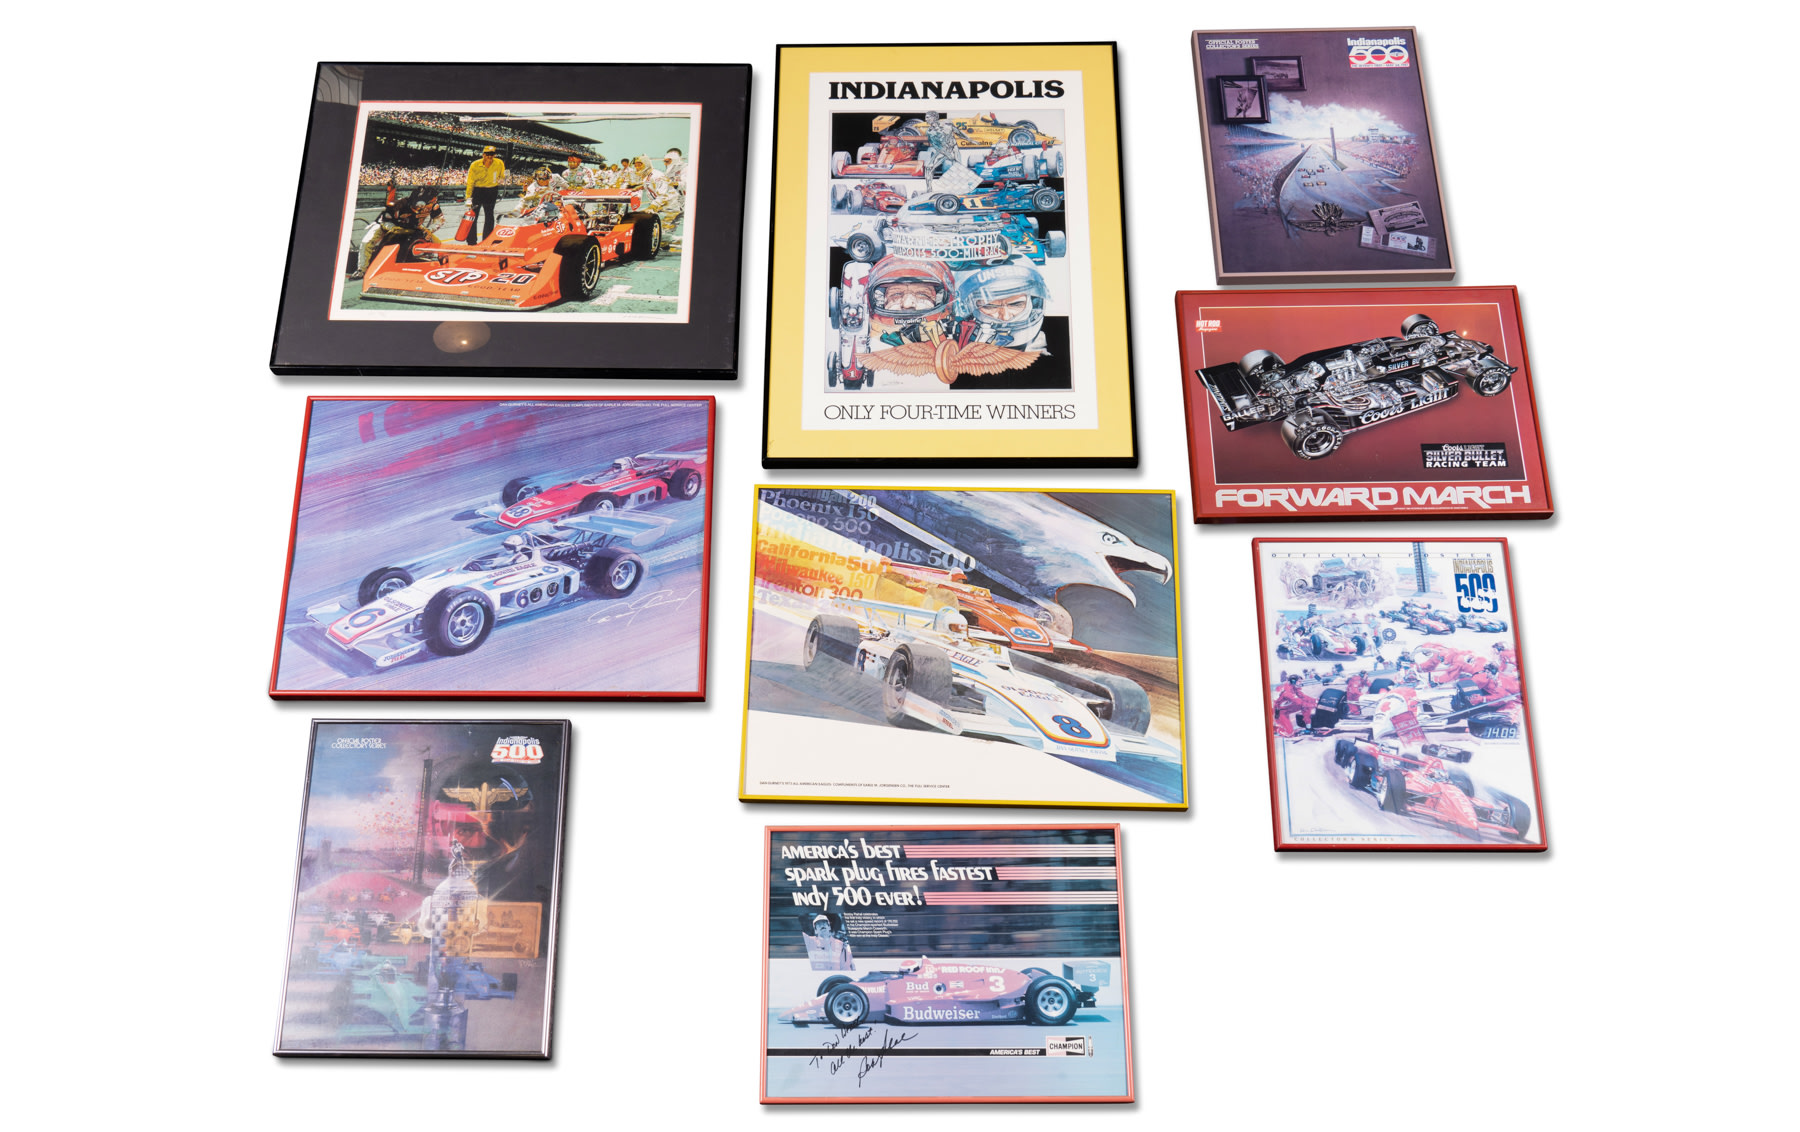 Assorted Indy Car Posters and Prints, Including One Signed to Don Weber by Bobby Rahal